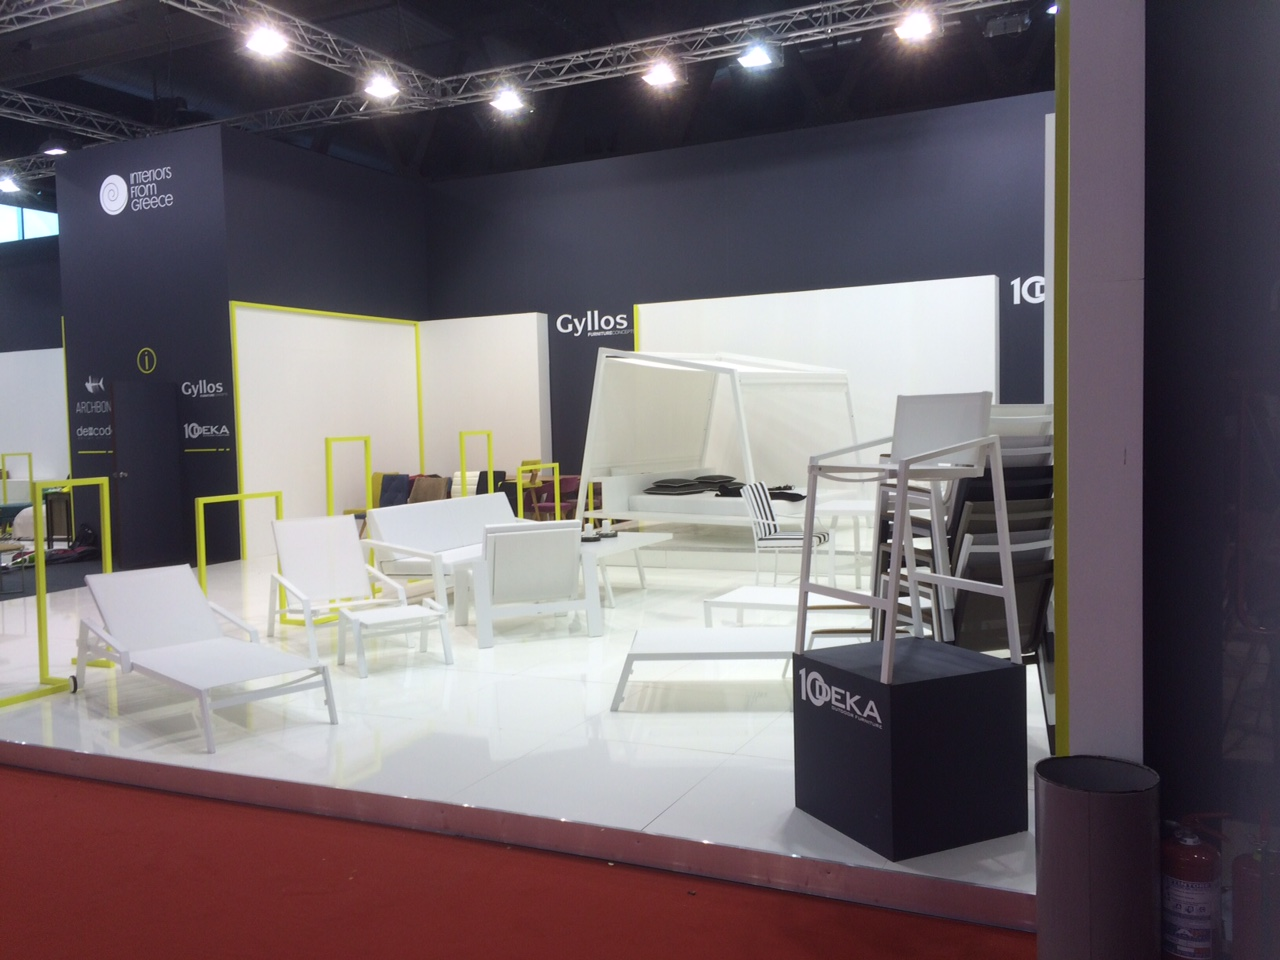 salon de milan 2015 les stands mobilier phs mobilier. Black Bedroom Furniture Sets. Home Design Ideas